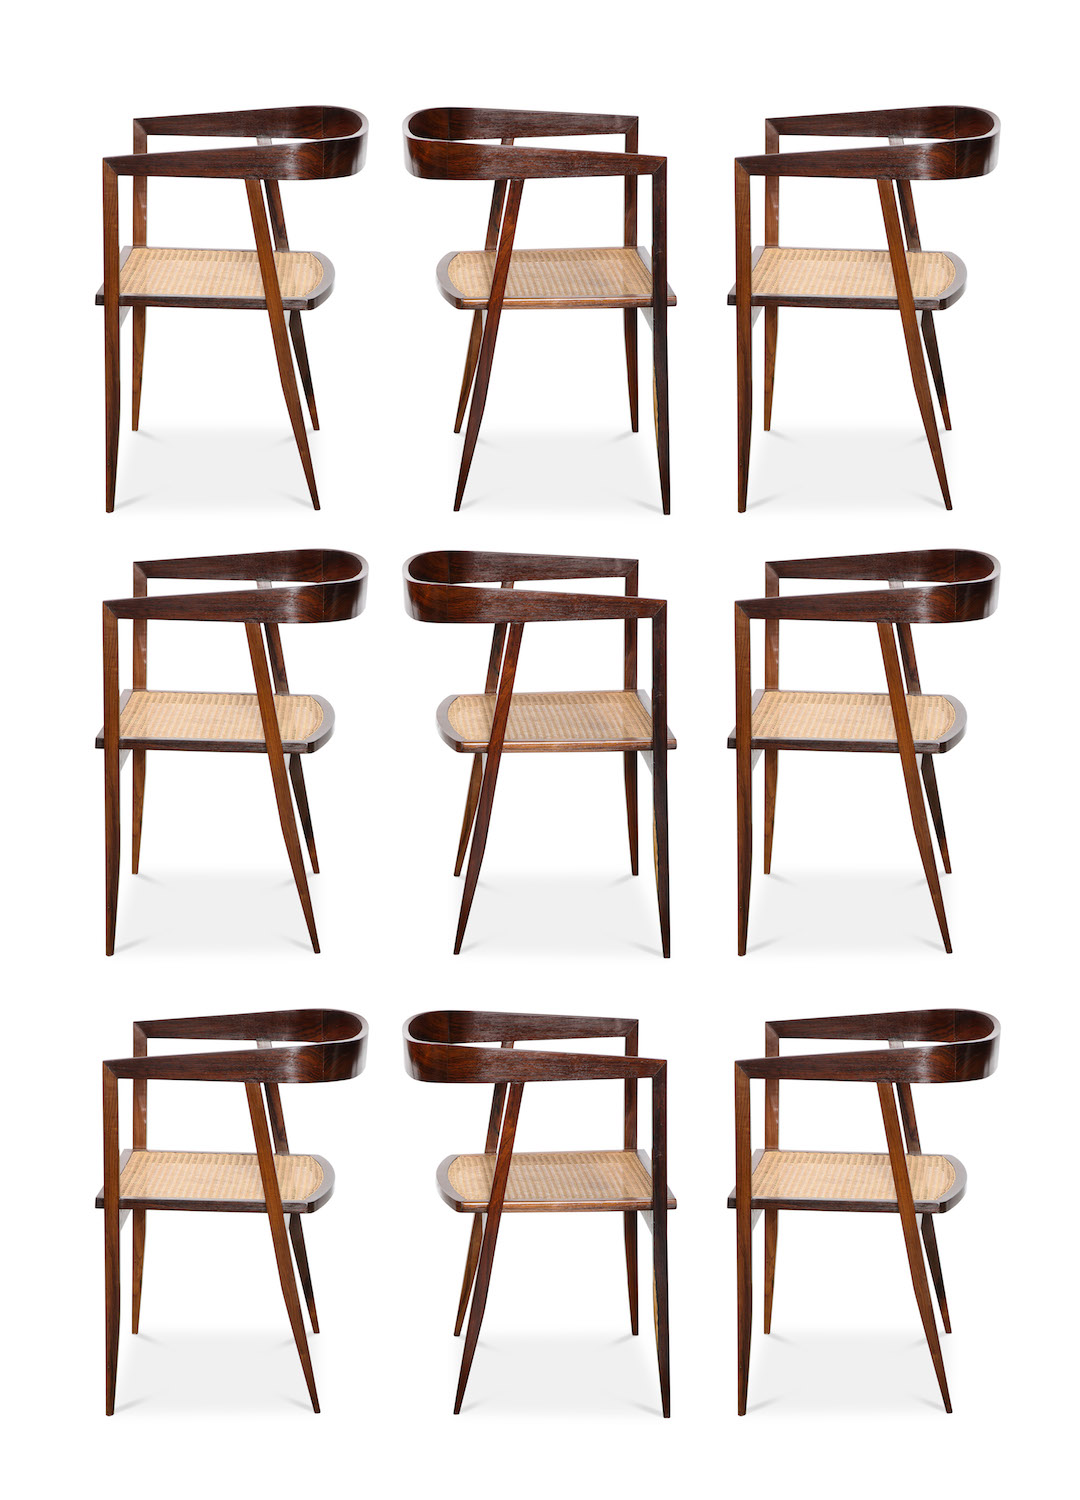 Tenriero Dining Chair 9.jpg